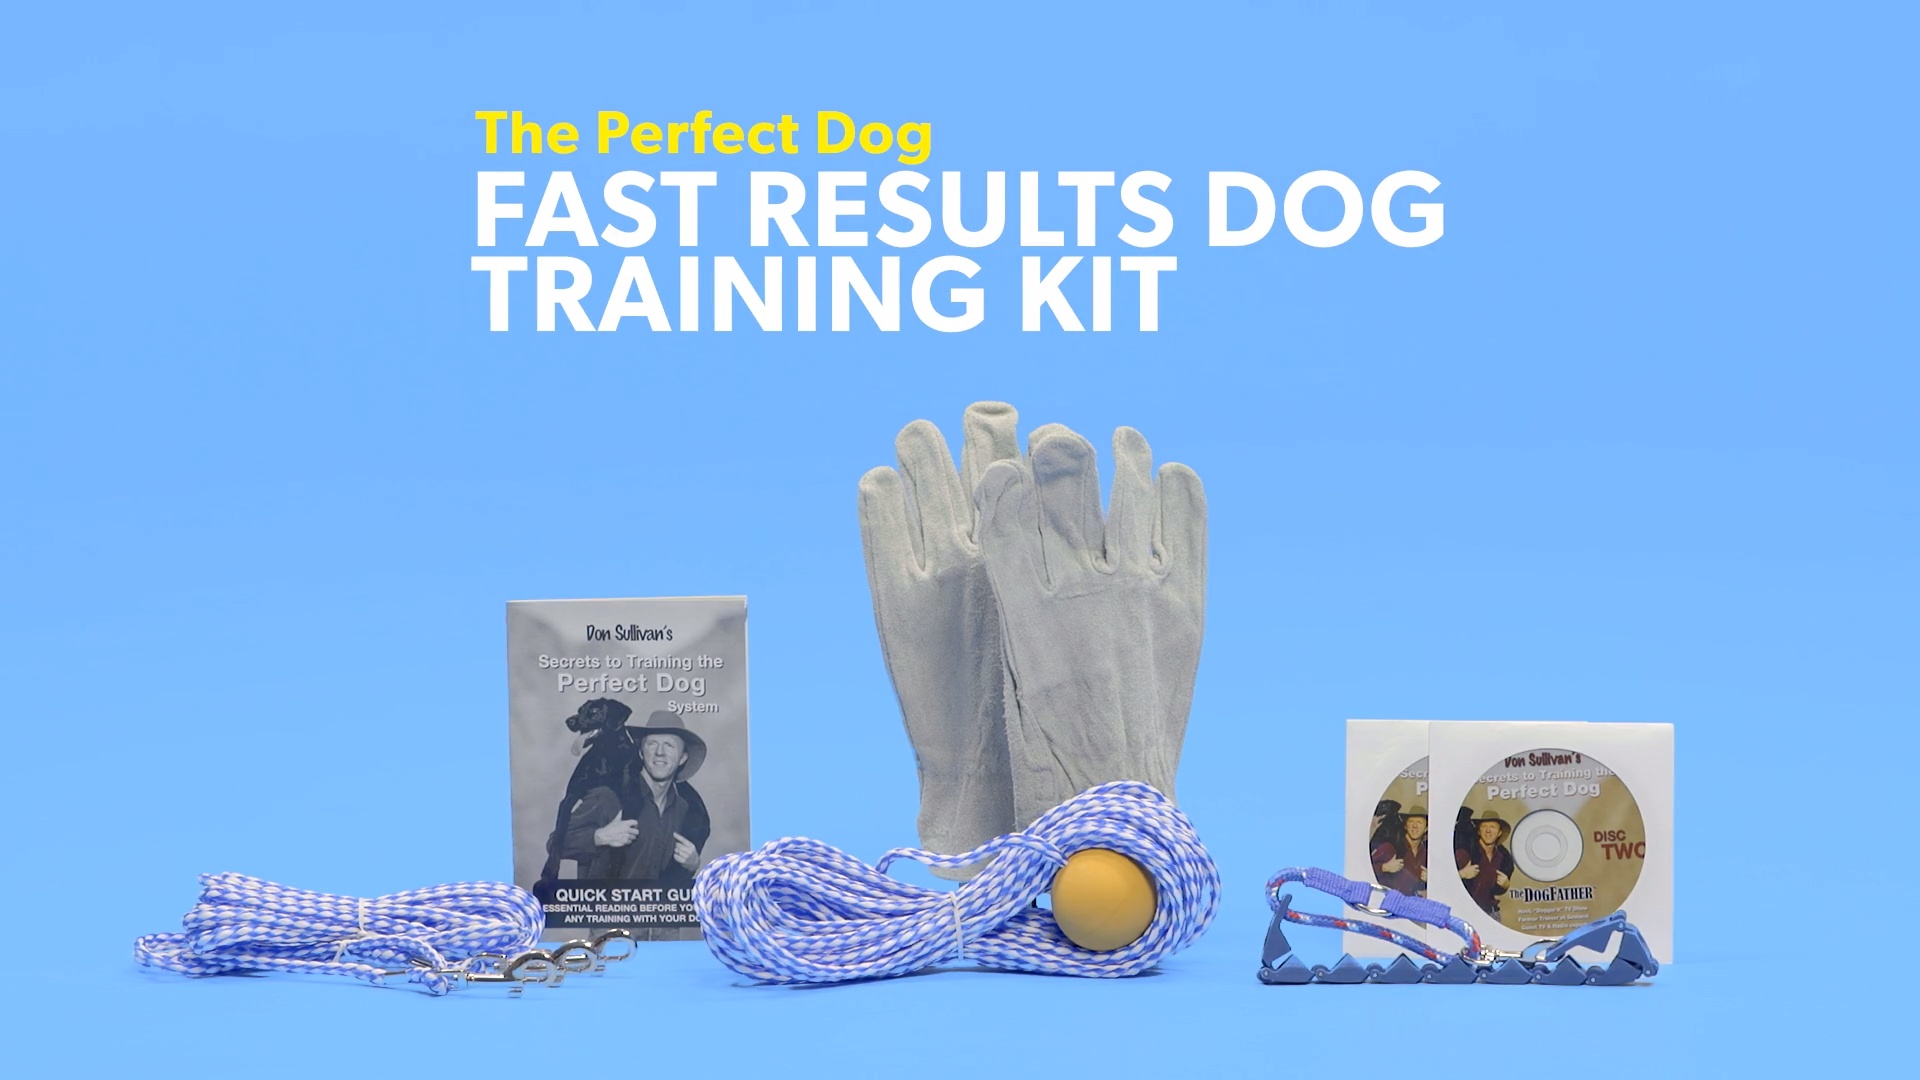 Pet Supplies Training Leashes alpha-grp.co.jp 9-Inch Perfect Dog ...